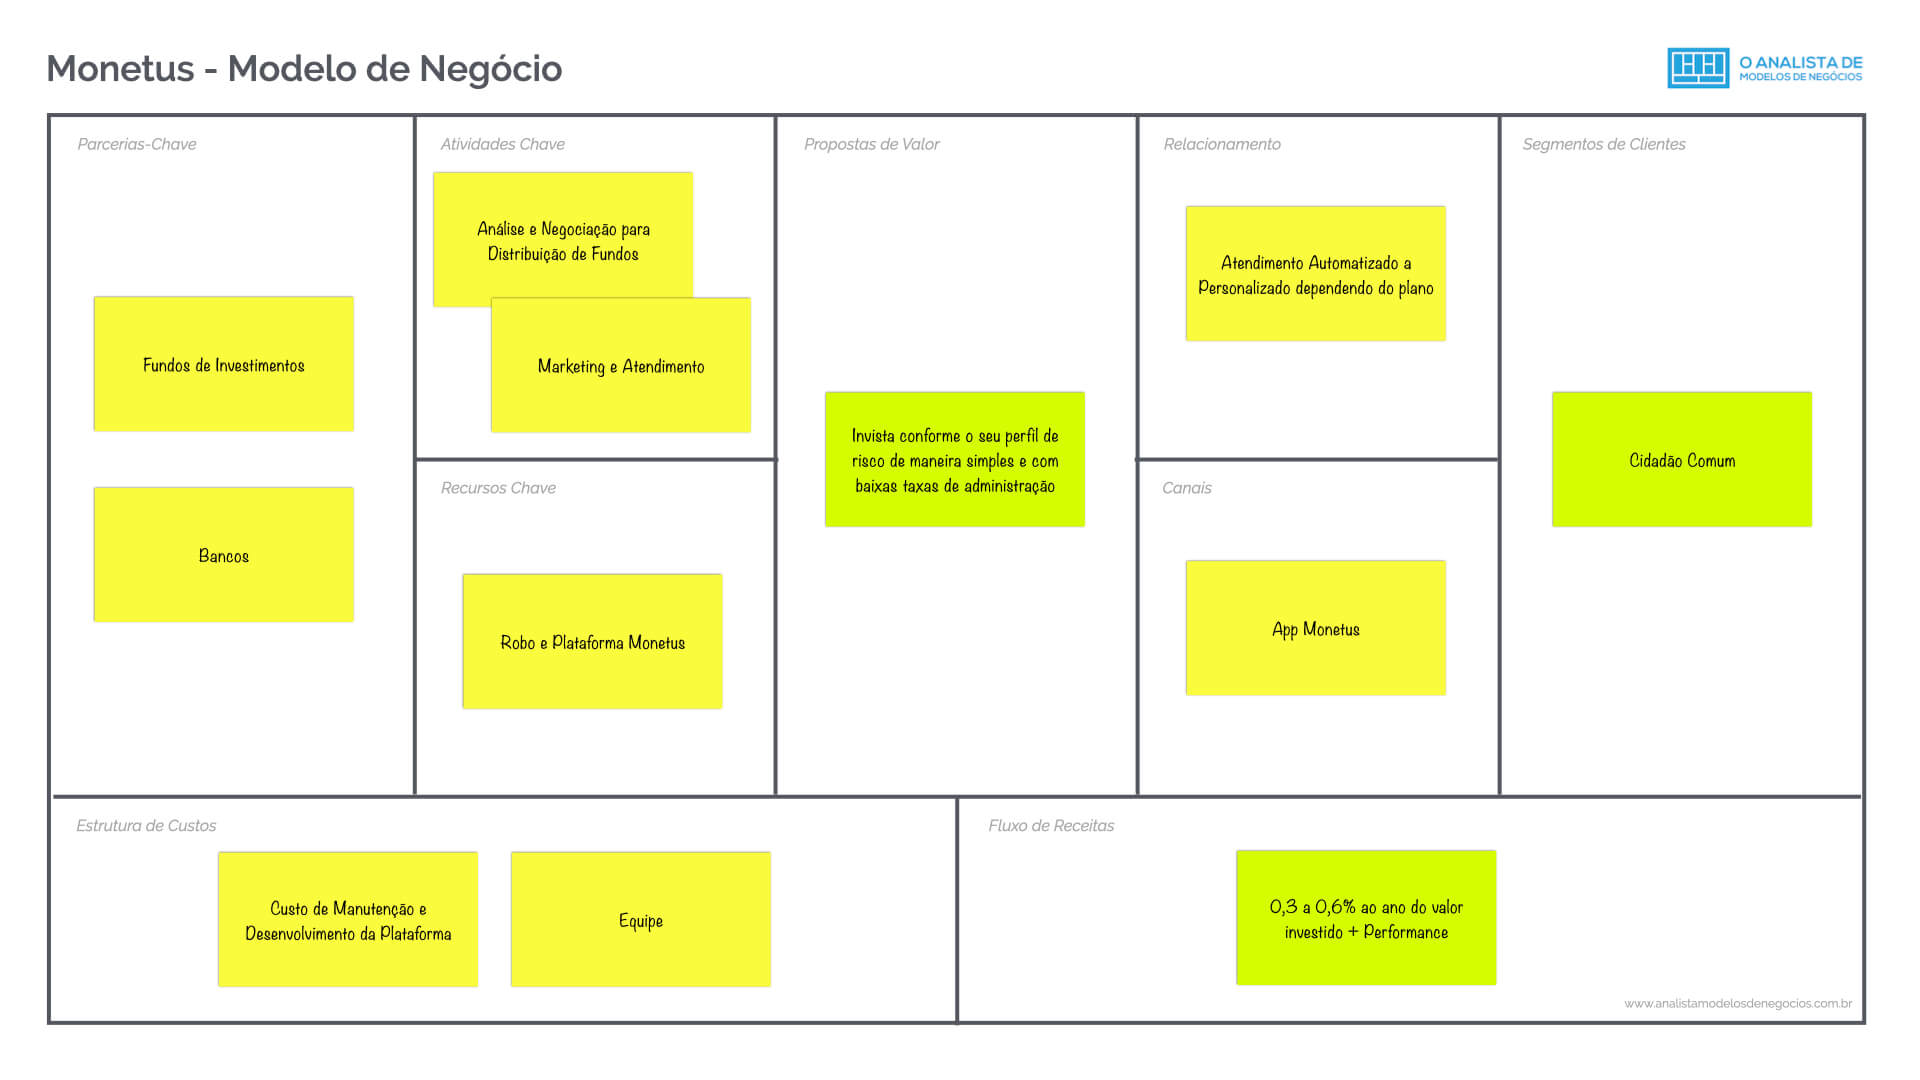 Modelo de Negócio da Monetus - Business Model Canvas